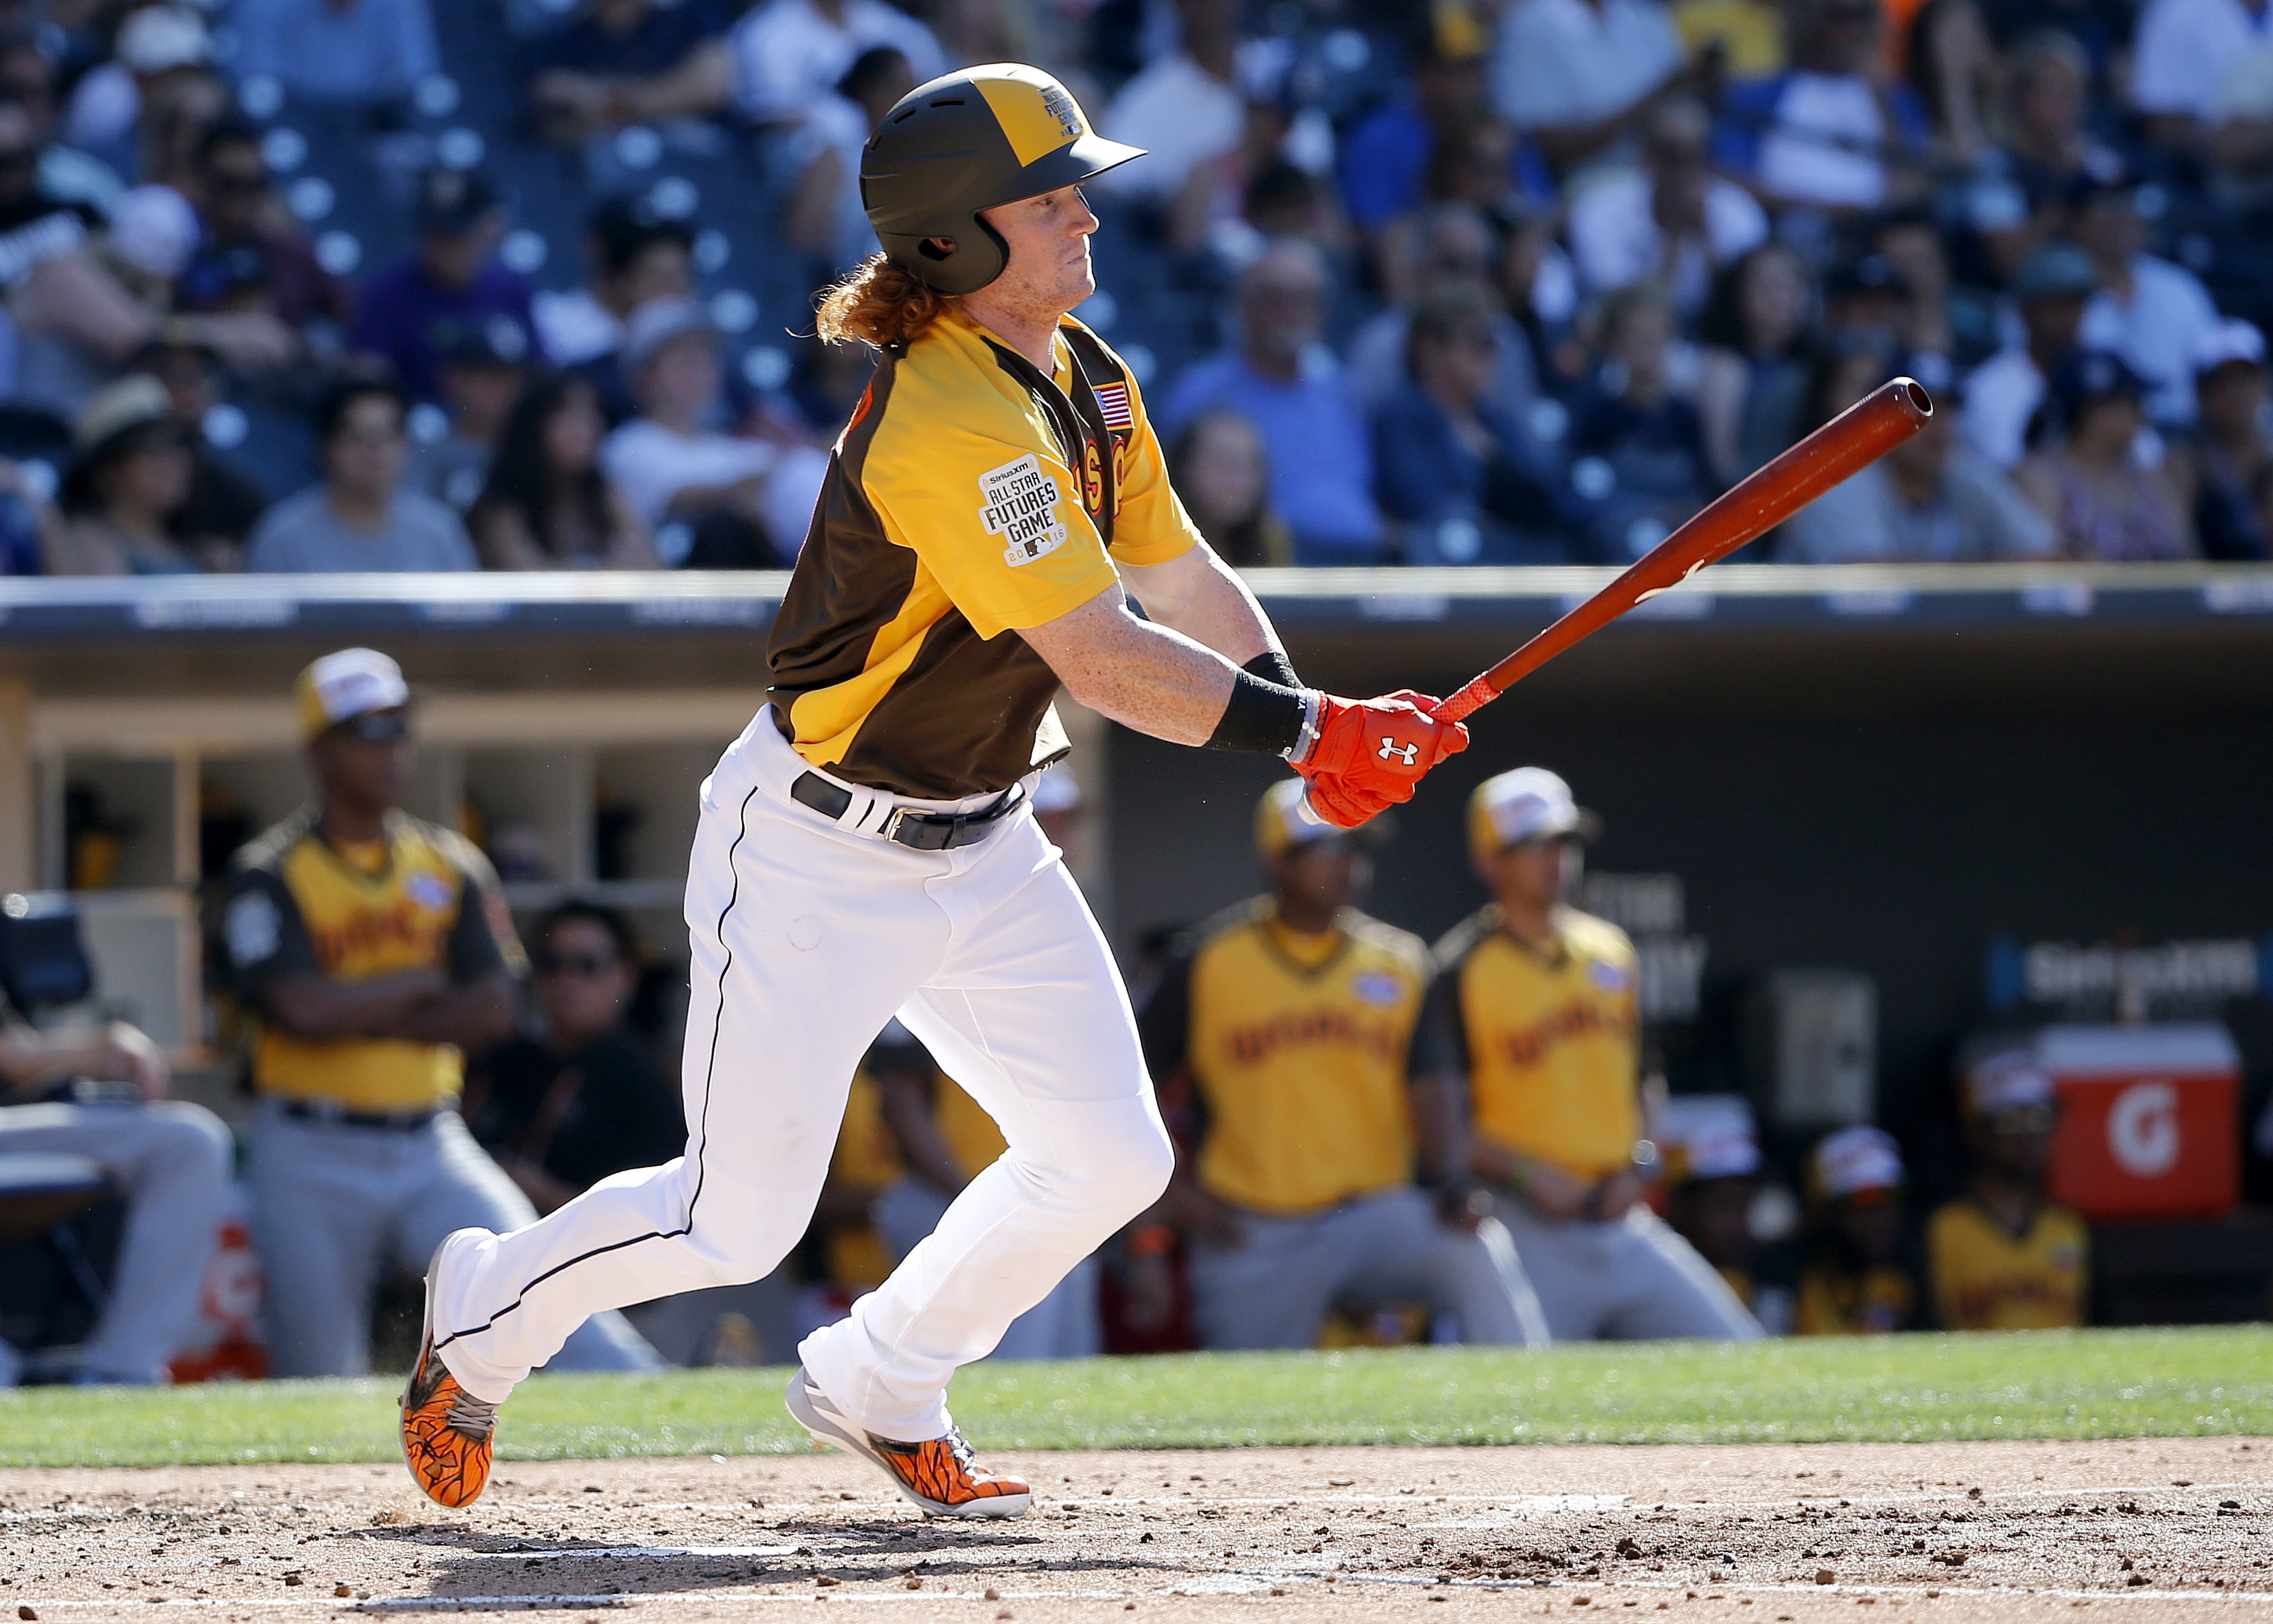 U.S. Team's Clint Frazier, of the Cleveland Indians, follows through on an RBI-base hit during the third inning of the All-Star Futures baseball game against the World Team, Sunday, July 10, 2016, in San Diego. (AP Photo/Lenny Ignelzi)